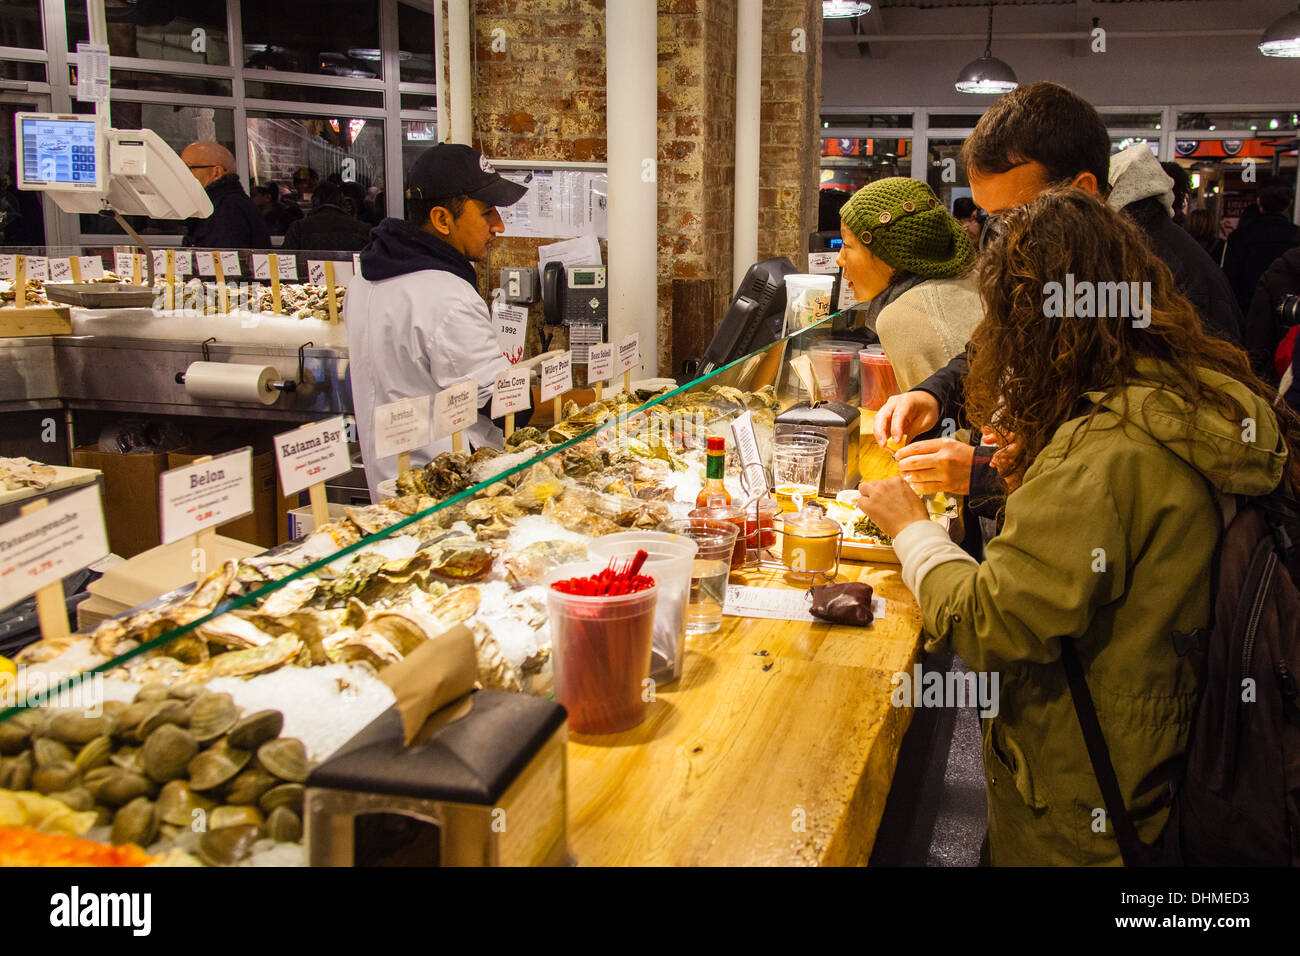 The lobster place seafood market or fishmongers chelsea for Fish market restaurant nyc